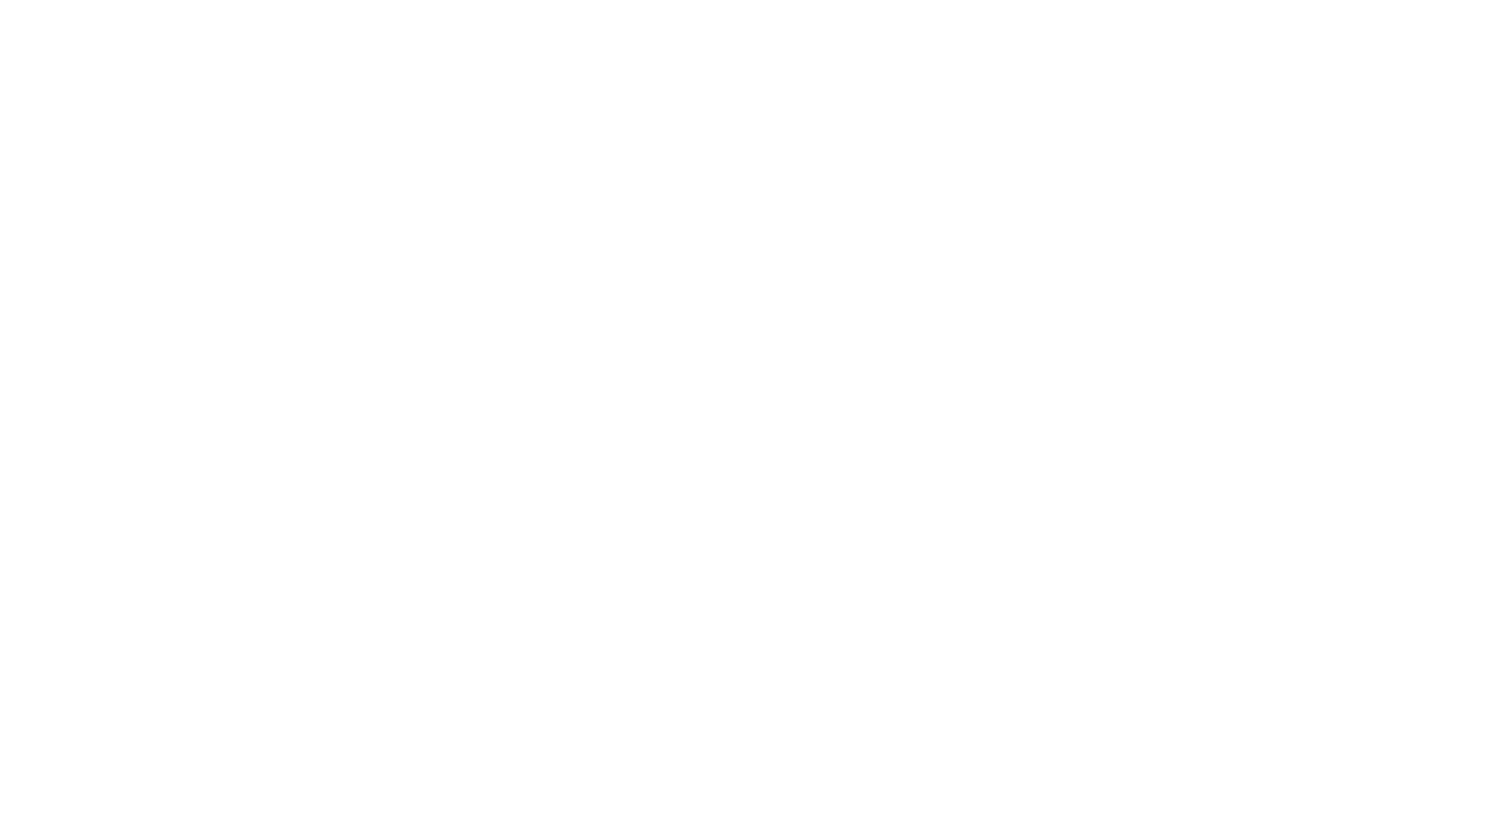 Sight Eyecare